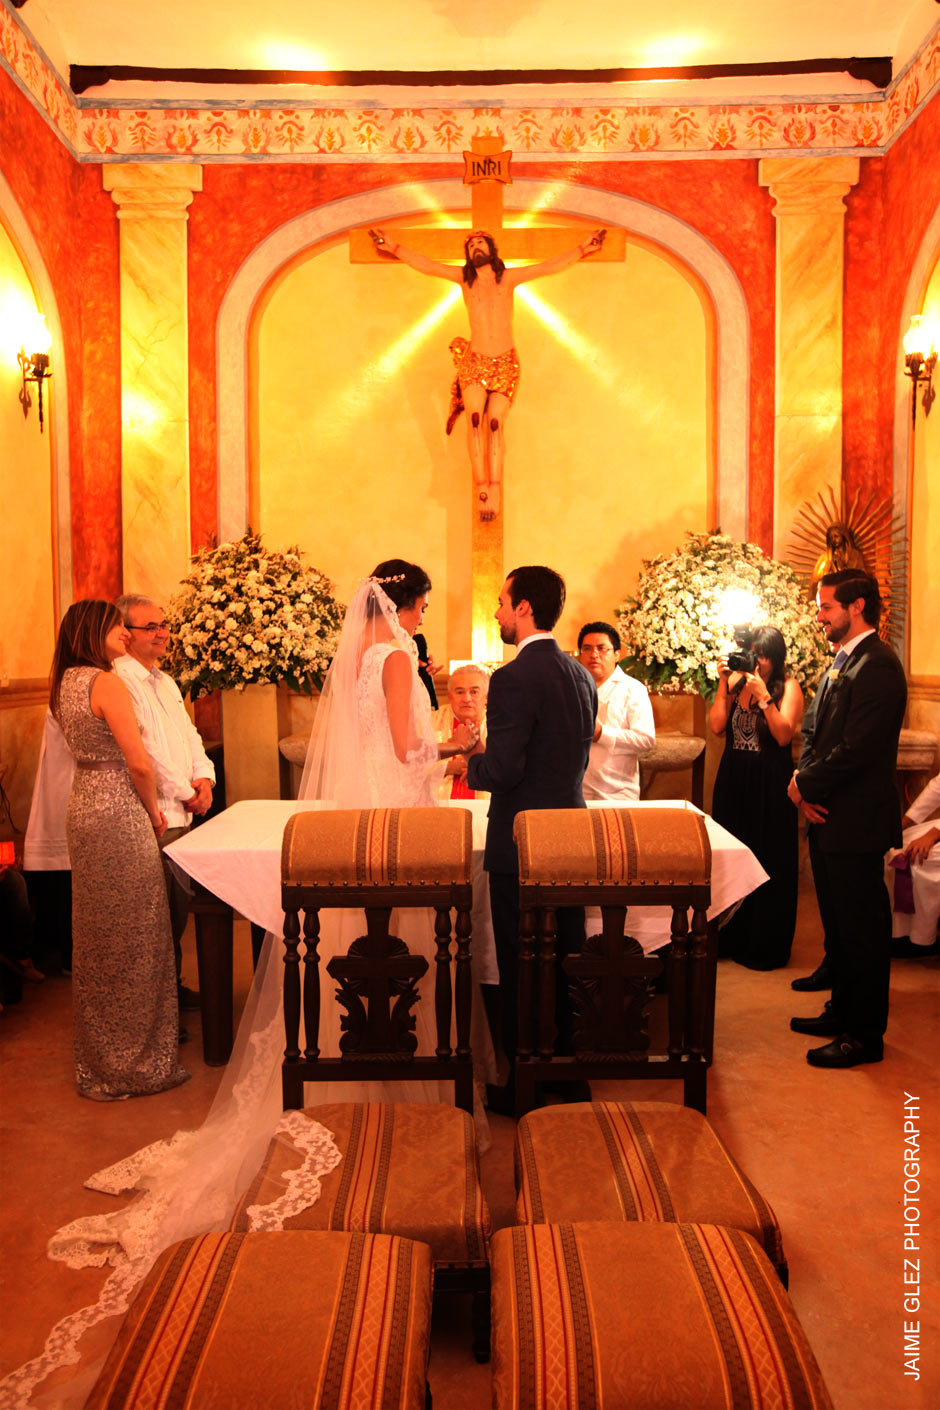 Wedding ceremony at Hacienda Santa Cruz chapel.